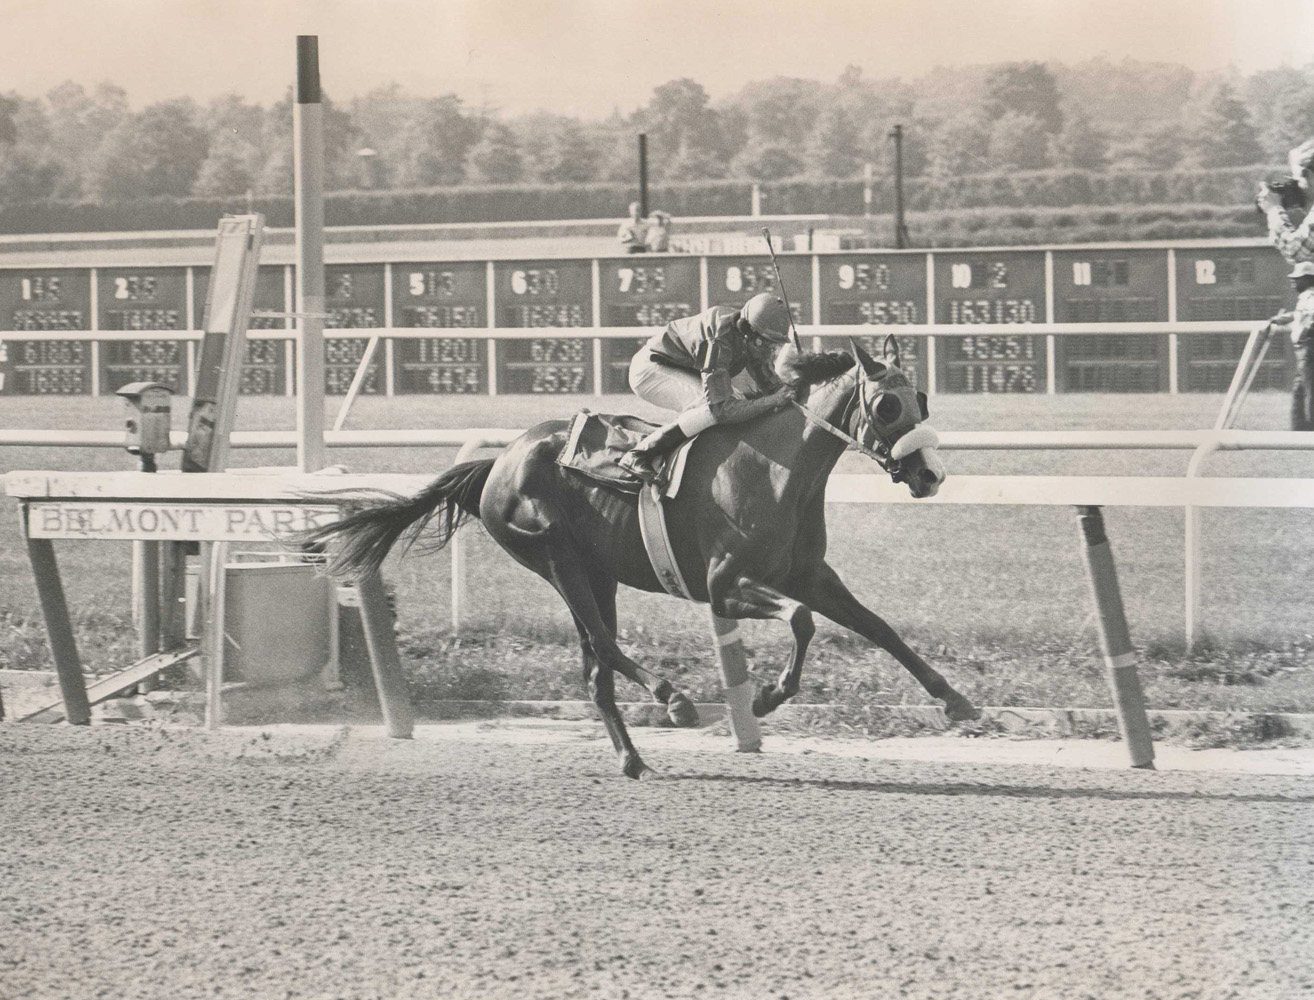 Chris Evert (Jorge Velasquez up) winning the 1974 Coaching Club American Oaks at Belmont Park (Ray Woolfe, Jr./Museum Collection)